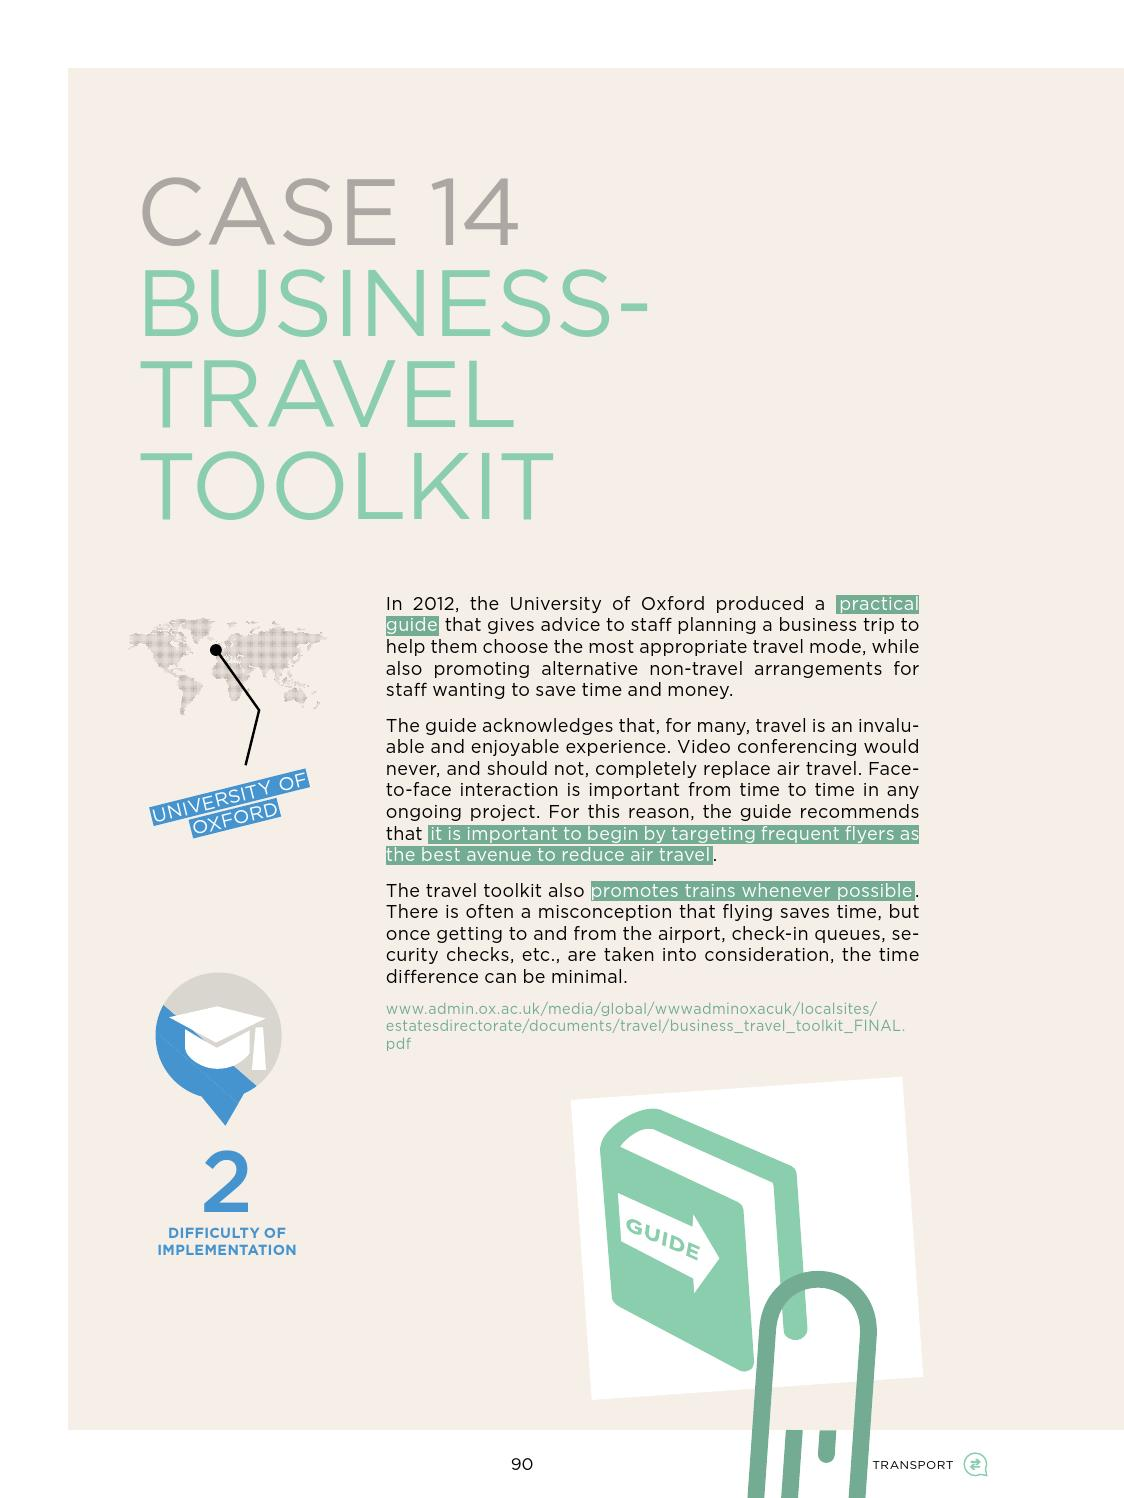 The Business Travel Toolkit